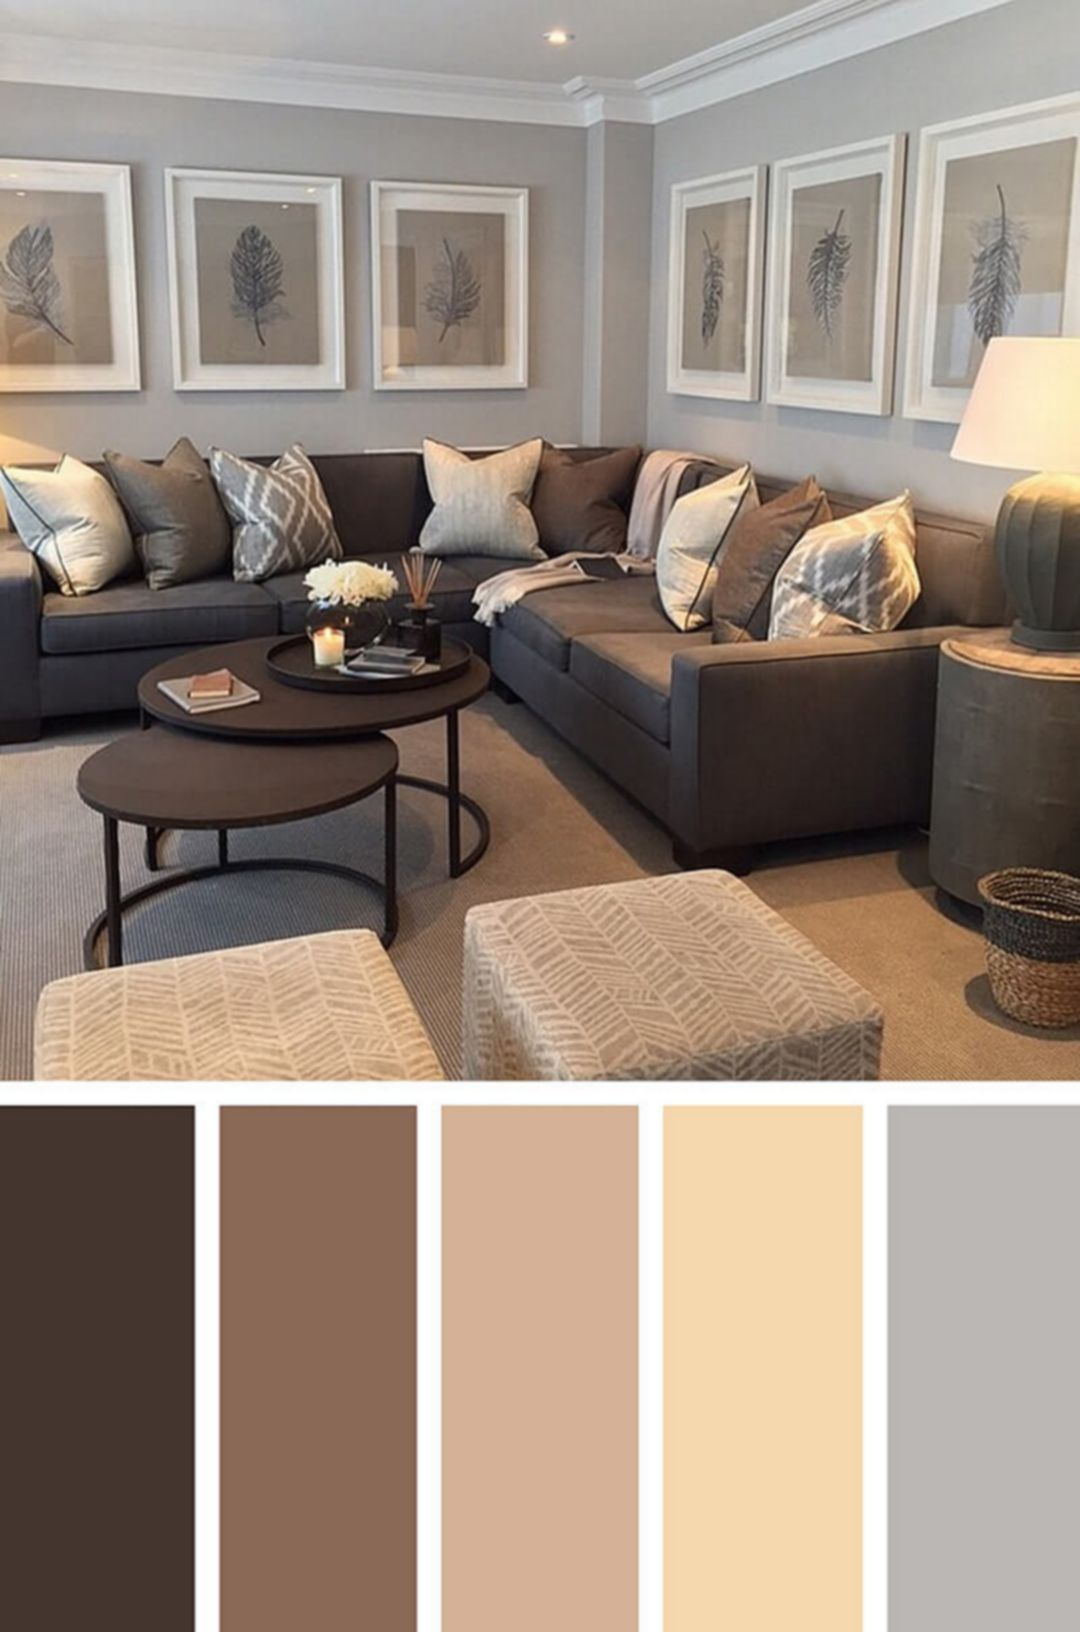 25 Best Color Harmony Ideas For Living Room Looks More Comfortable